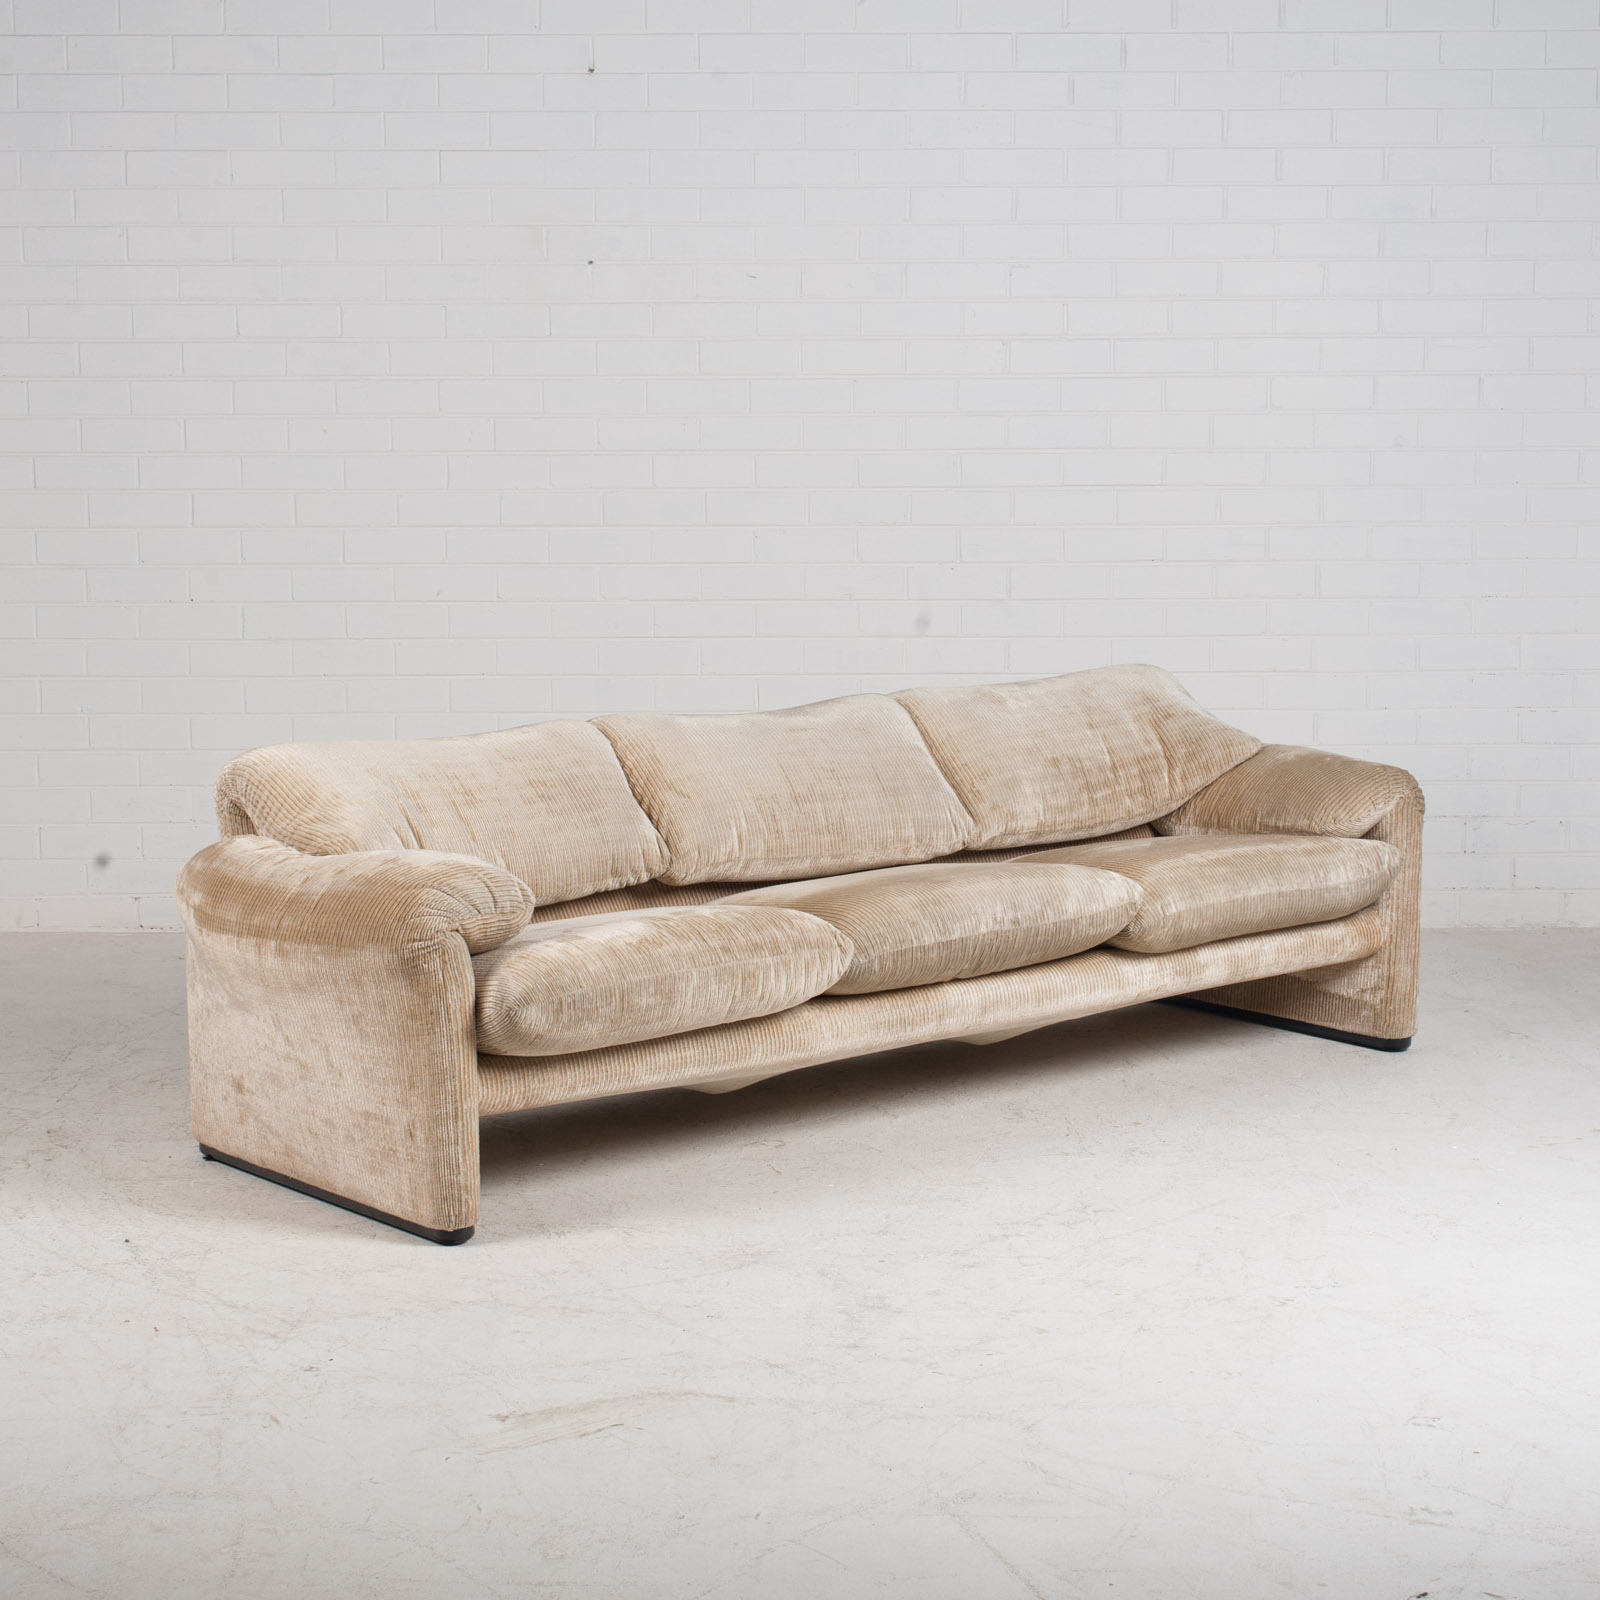 Maralunga 3 Seat Sofa By Vico Magistretti For Cassina In Original Upholstery 1970s Italy 02